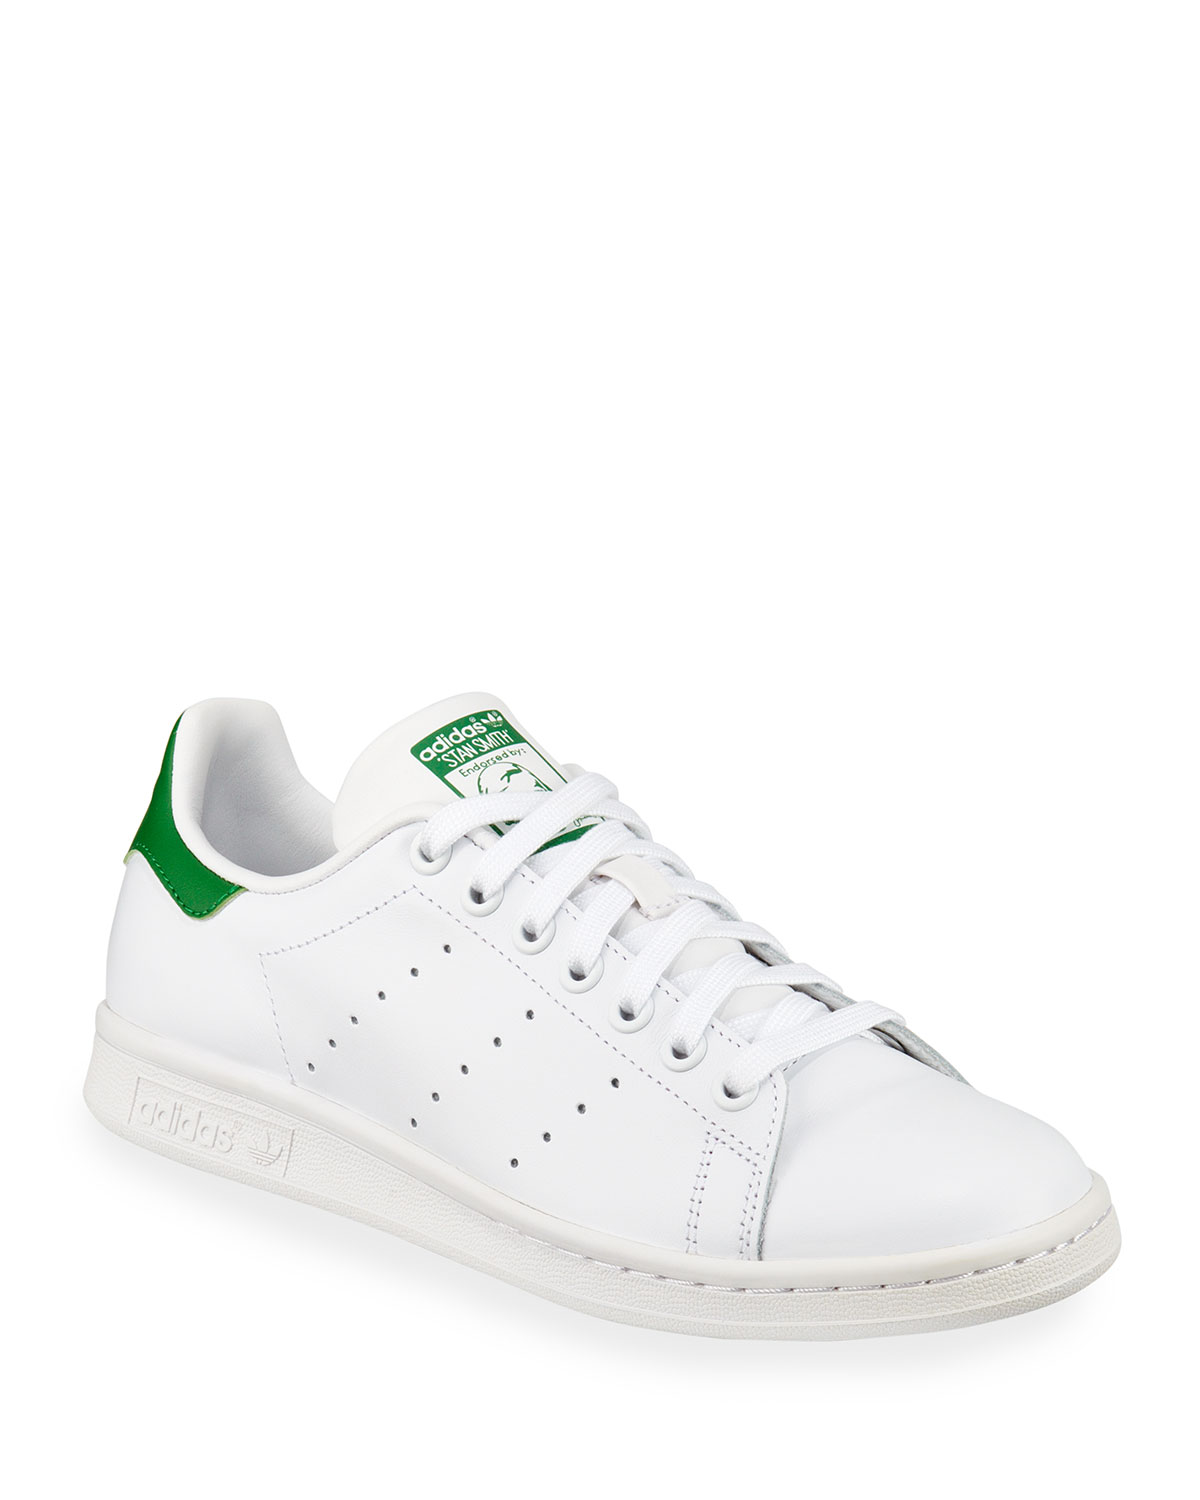 reputable site ee1b3 91878 Stan Smith Classic Sneaker, White/Green